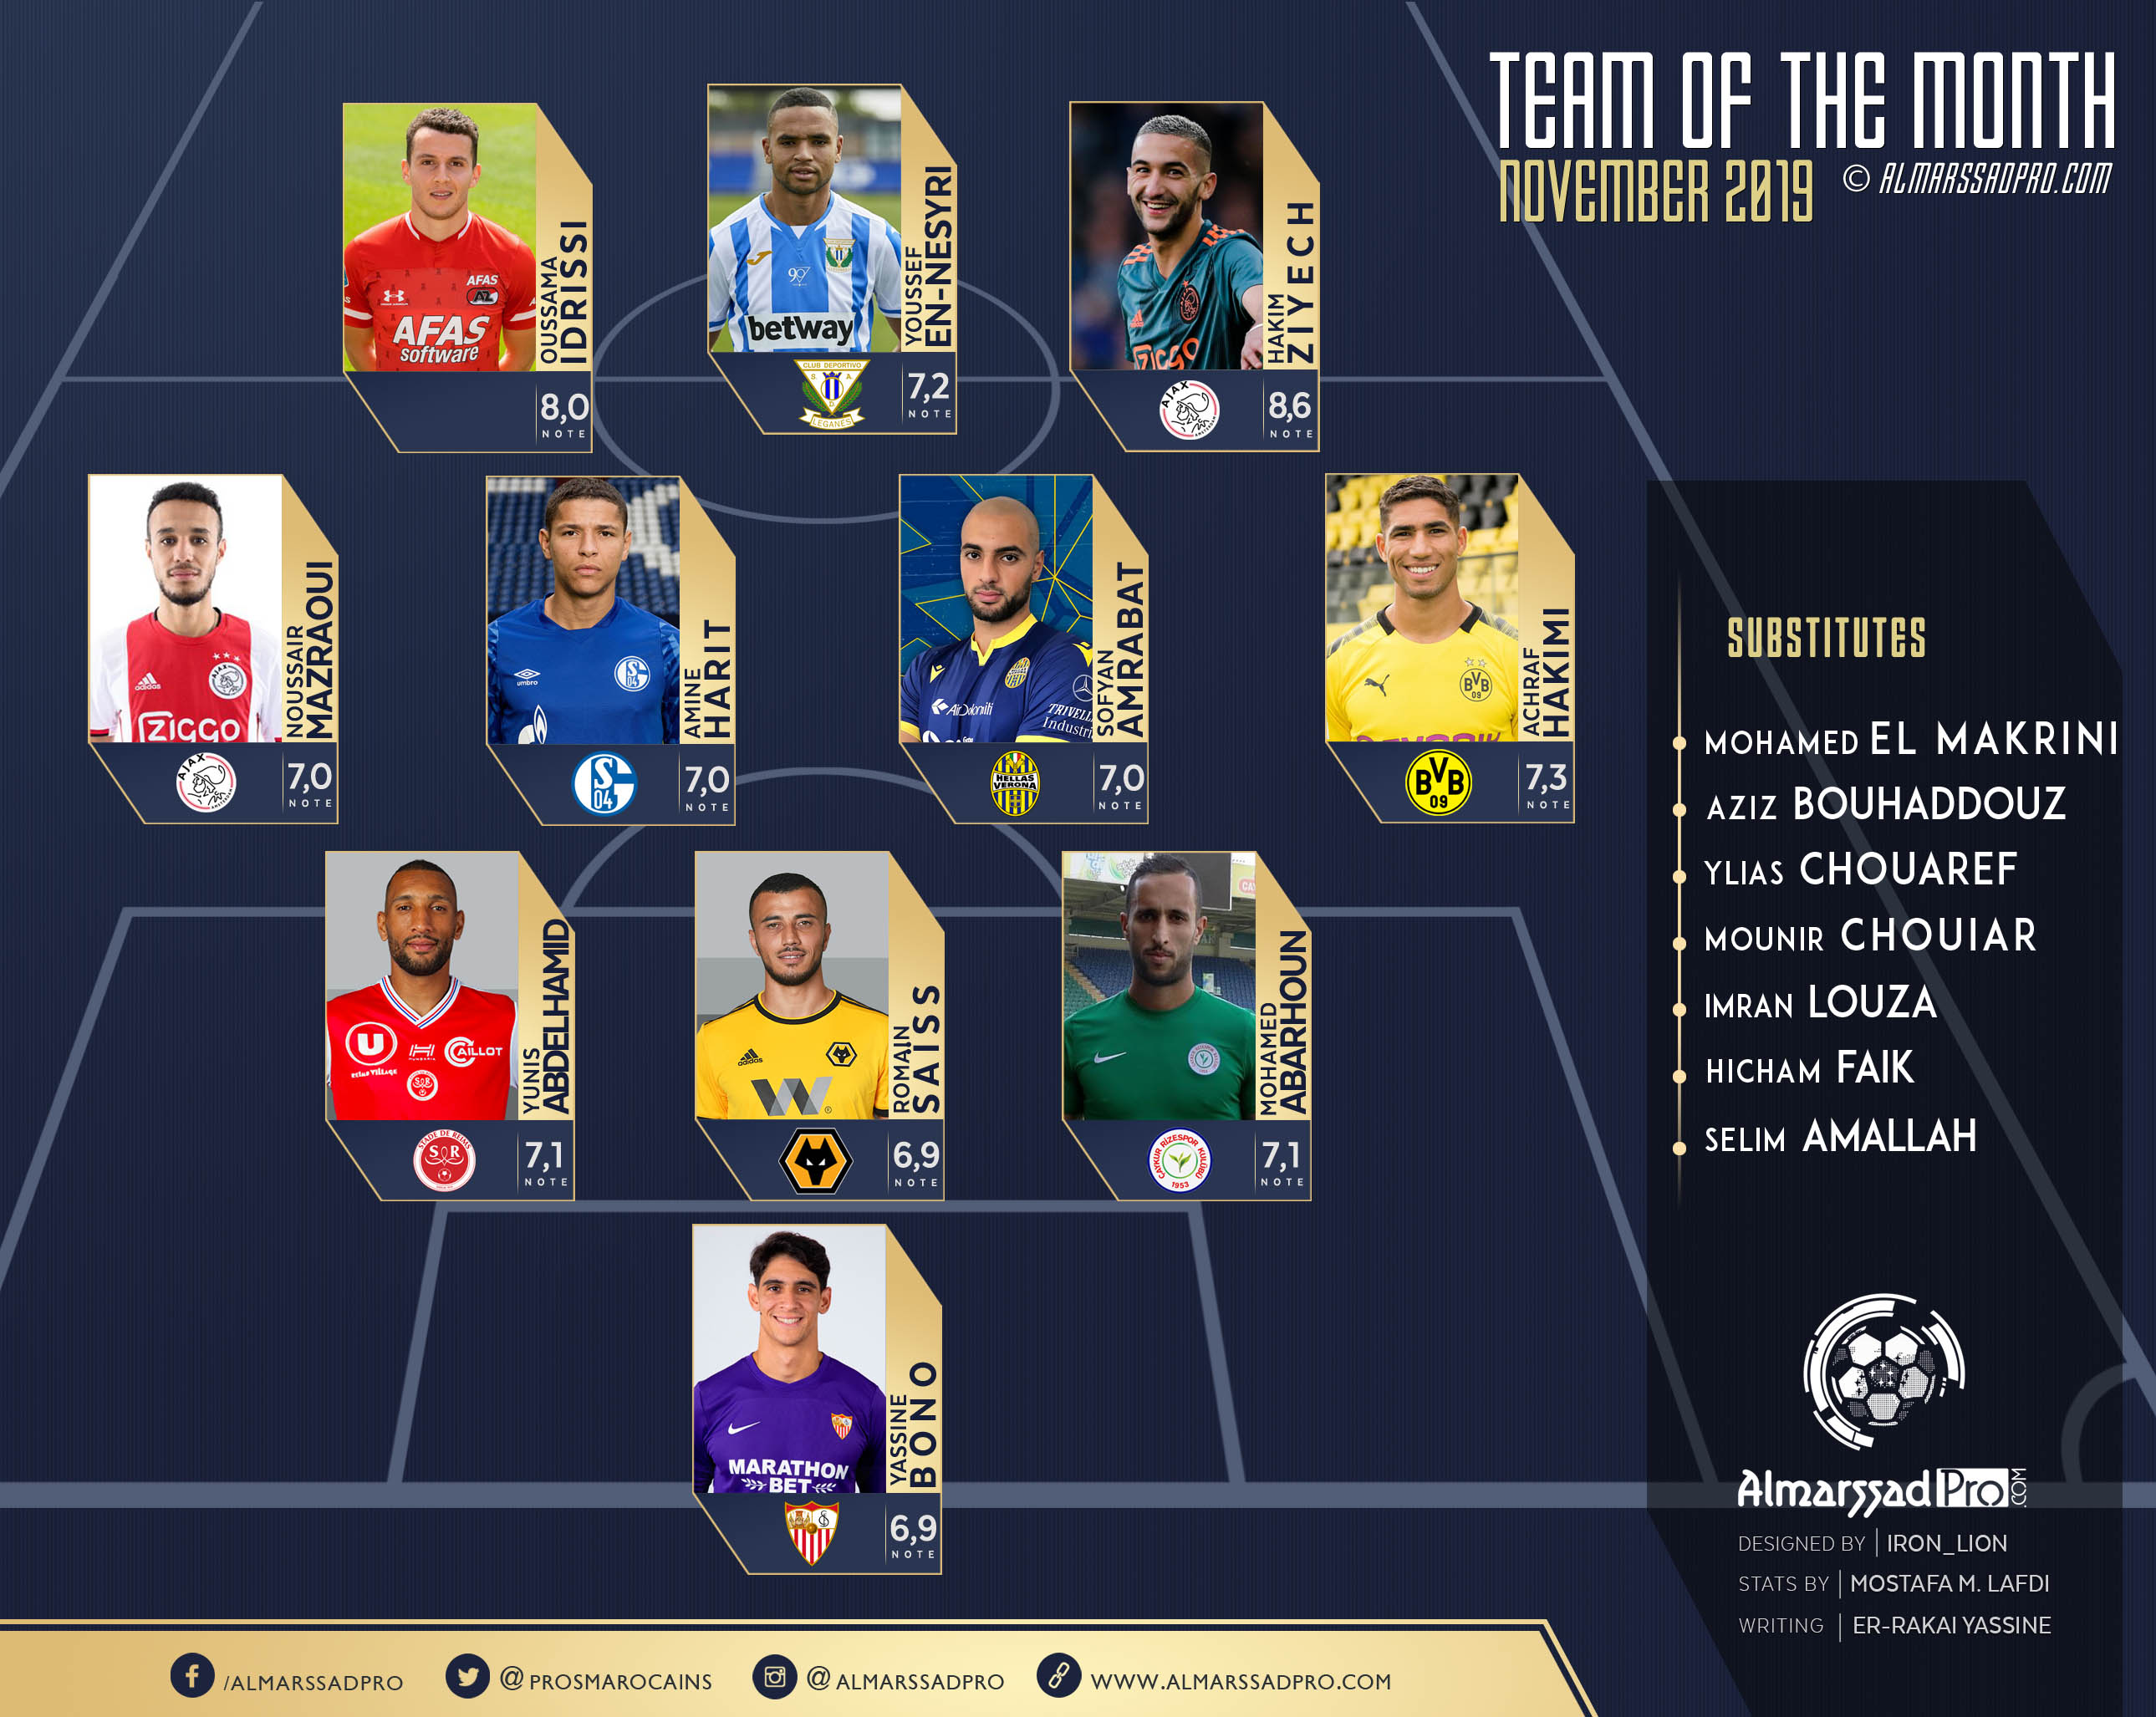 teamofthemonth_nov2019